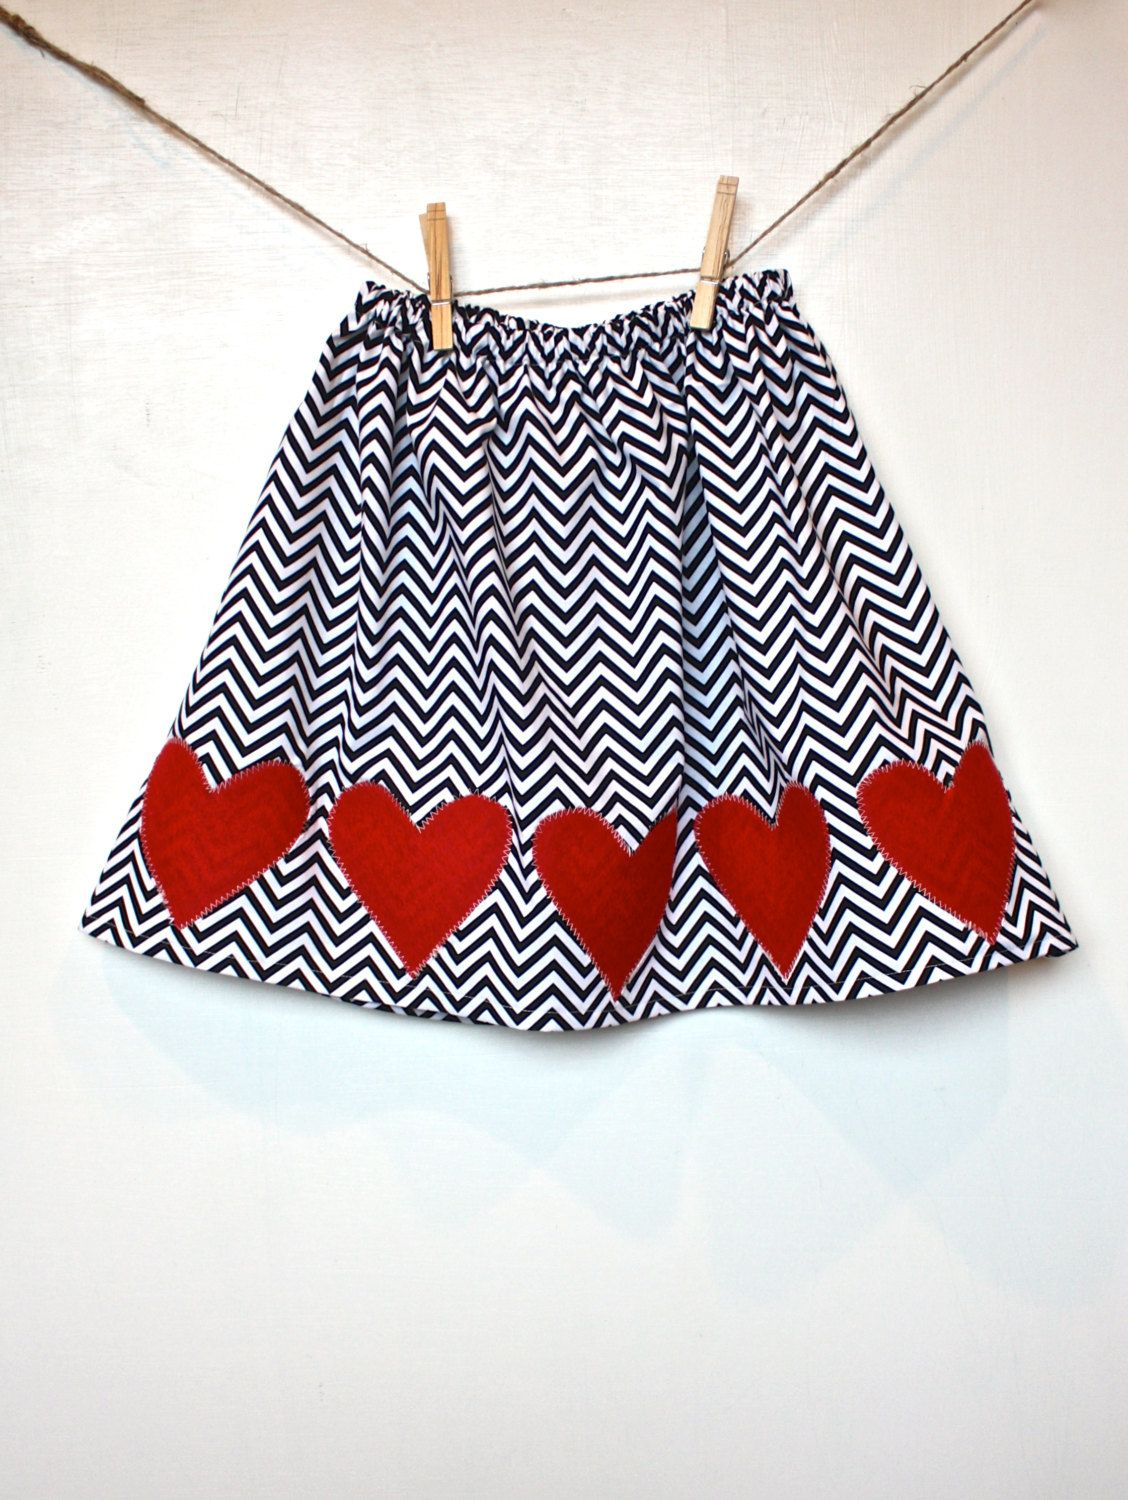 Twirly Red Wool Heart Applique and Chevron Skirt // Baby Skirt // Toddler Skirt. $28.00, via Etsy.